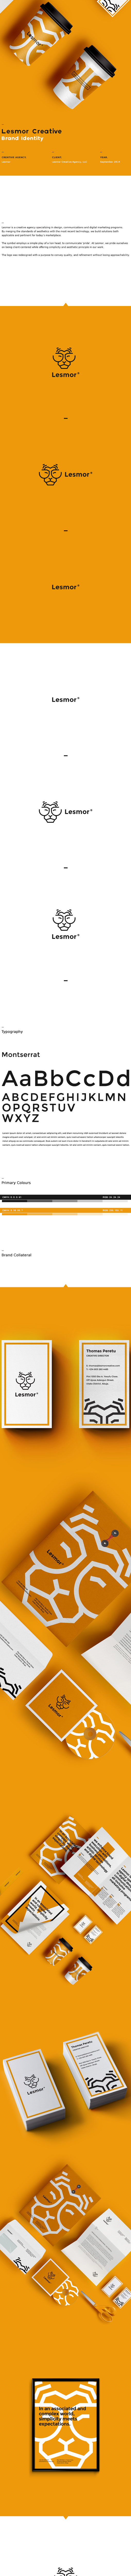 Lesmor,lion,branding stationary,orange,black,animal,minimalist,design,art,world,guideline,culture,pattern,poster,nerd